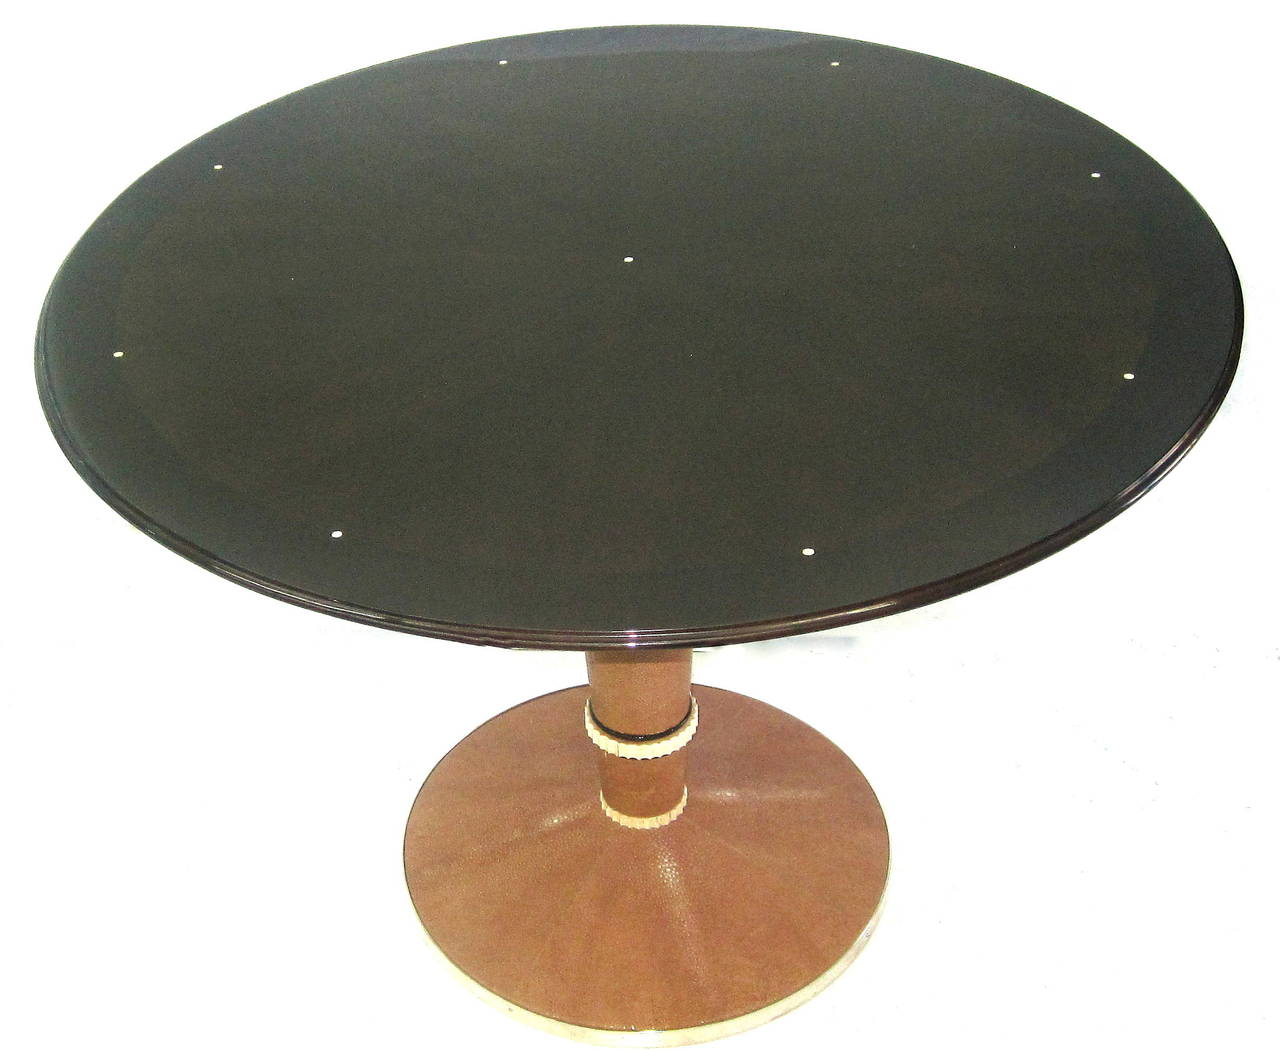 A Unique French Art Deco Table by Saddier in Exotic Wood, Mother of Pearl Inlay, Shagreen Base Adorned with Bakelite, and Nickeled Metal Trim to Complete the Refined Elegance of this One-of-a-Kind Piece.